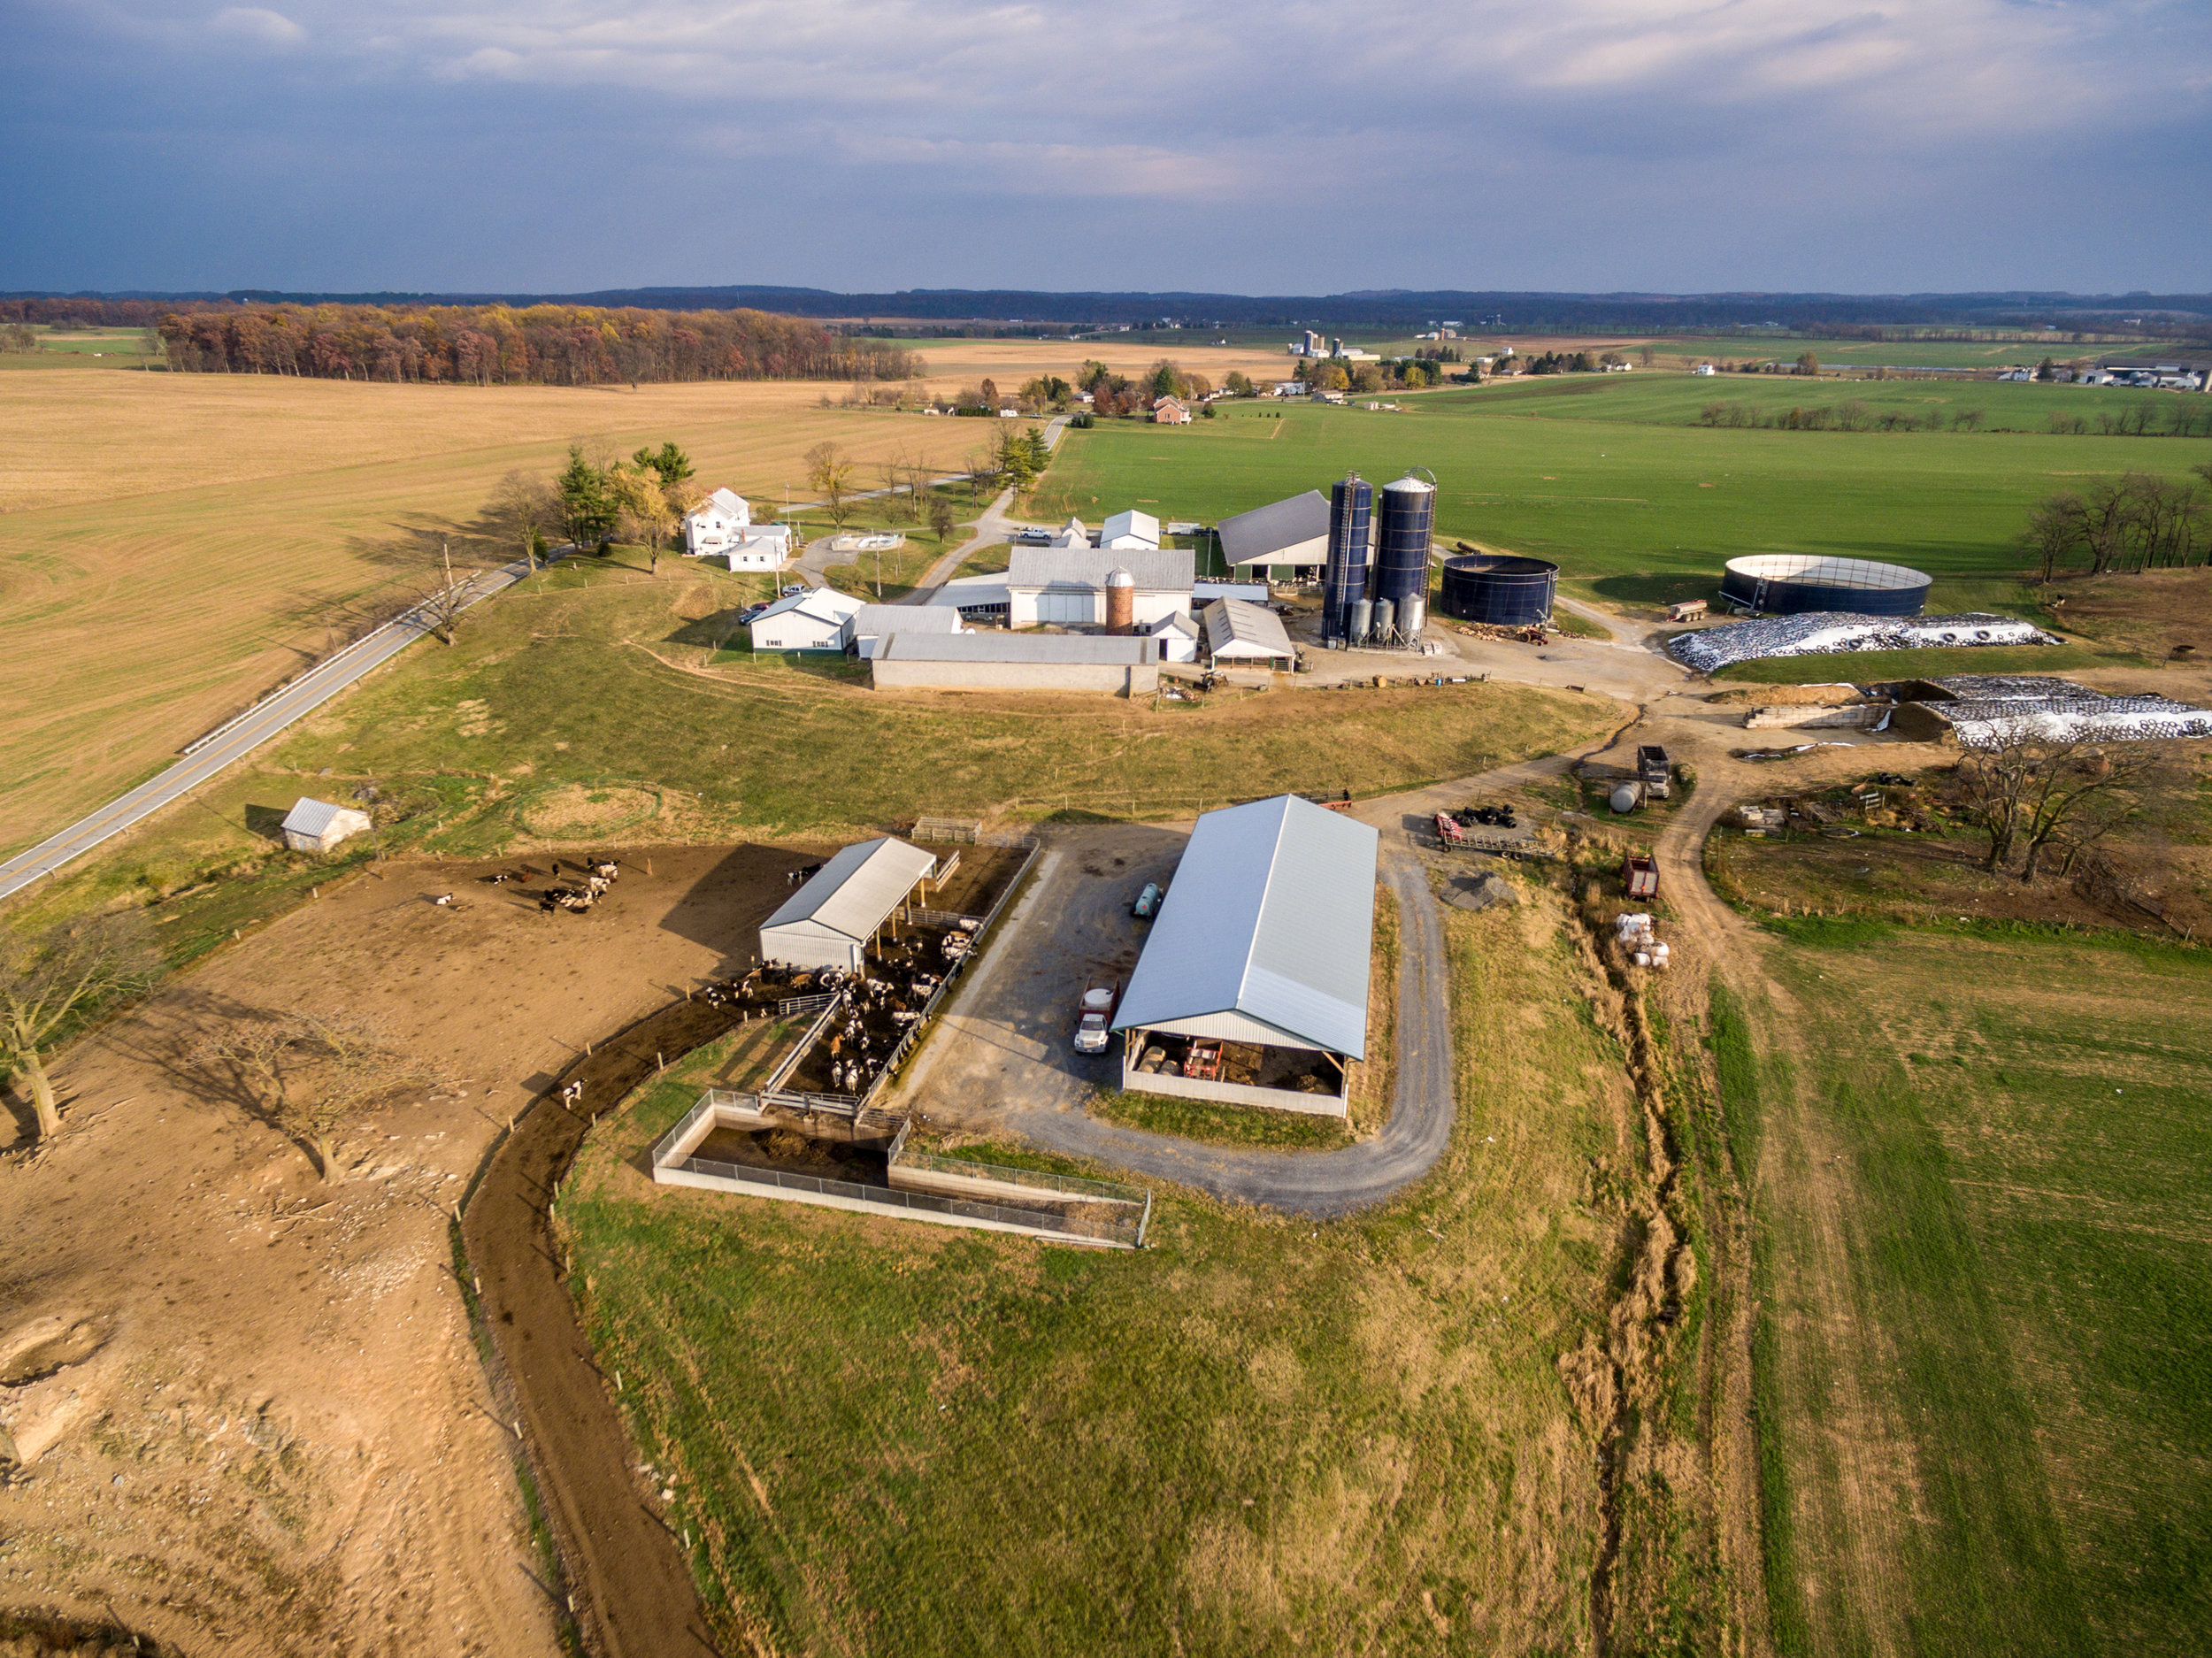 Image by Edwin Remsberg. Aerial image of Glade Haven Farms LLC, showing dairy barns, grain silos, and pastures.